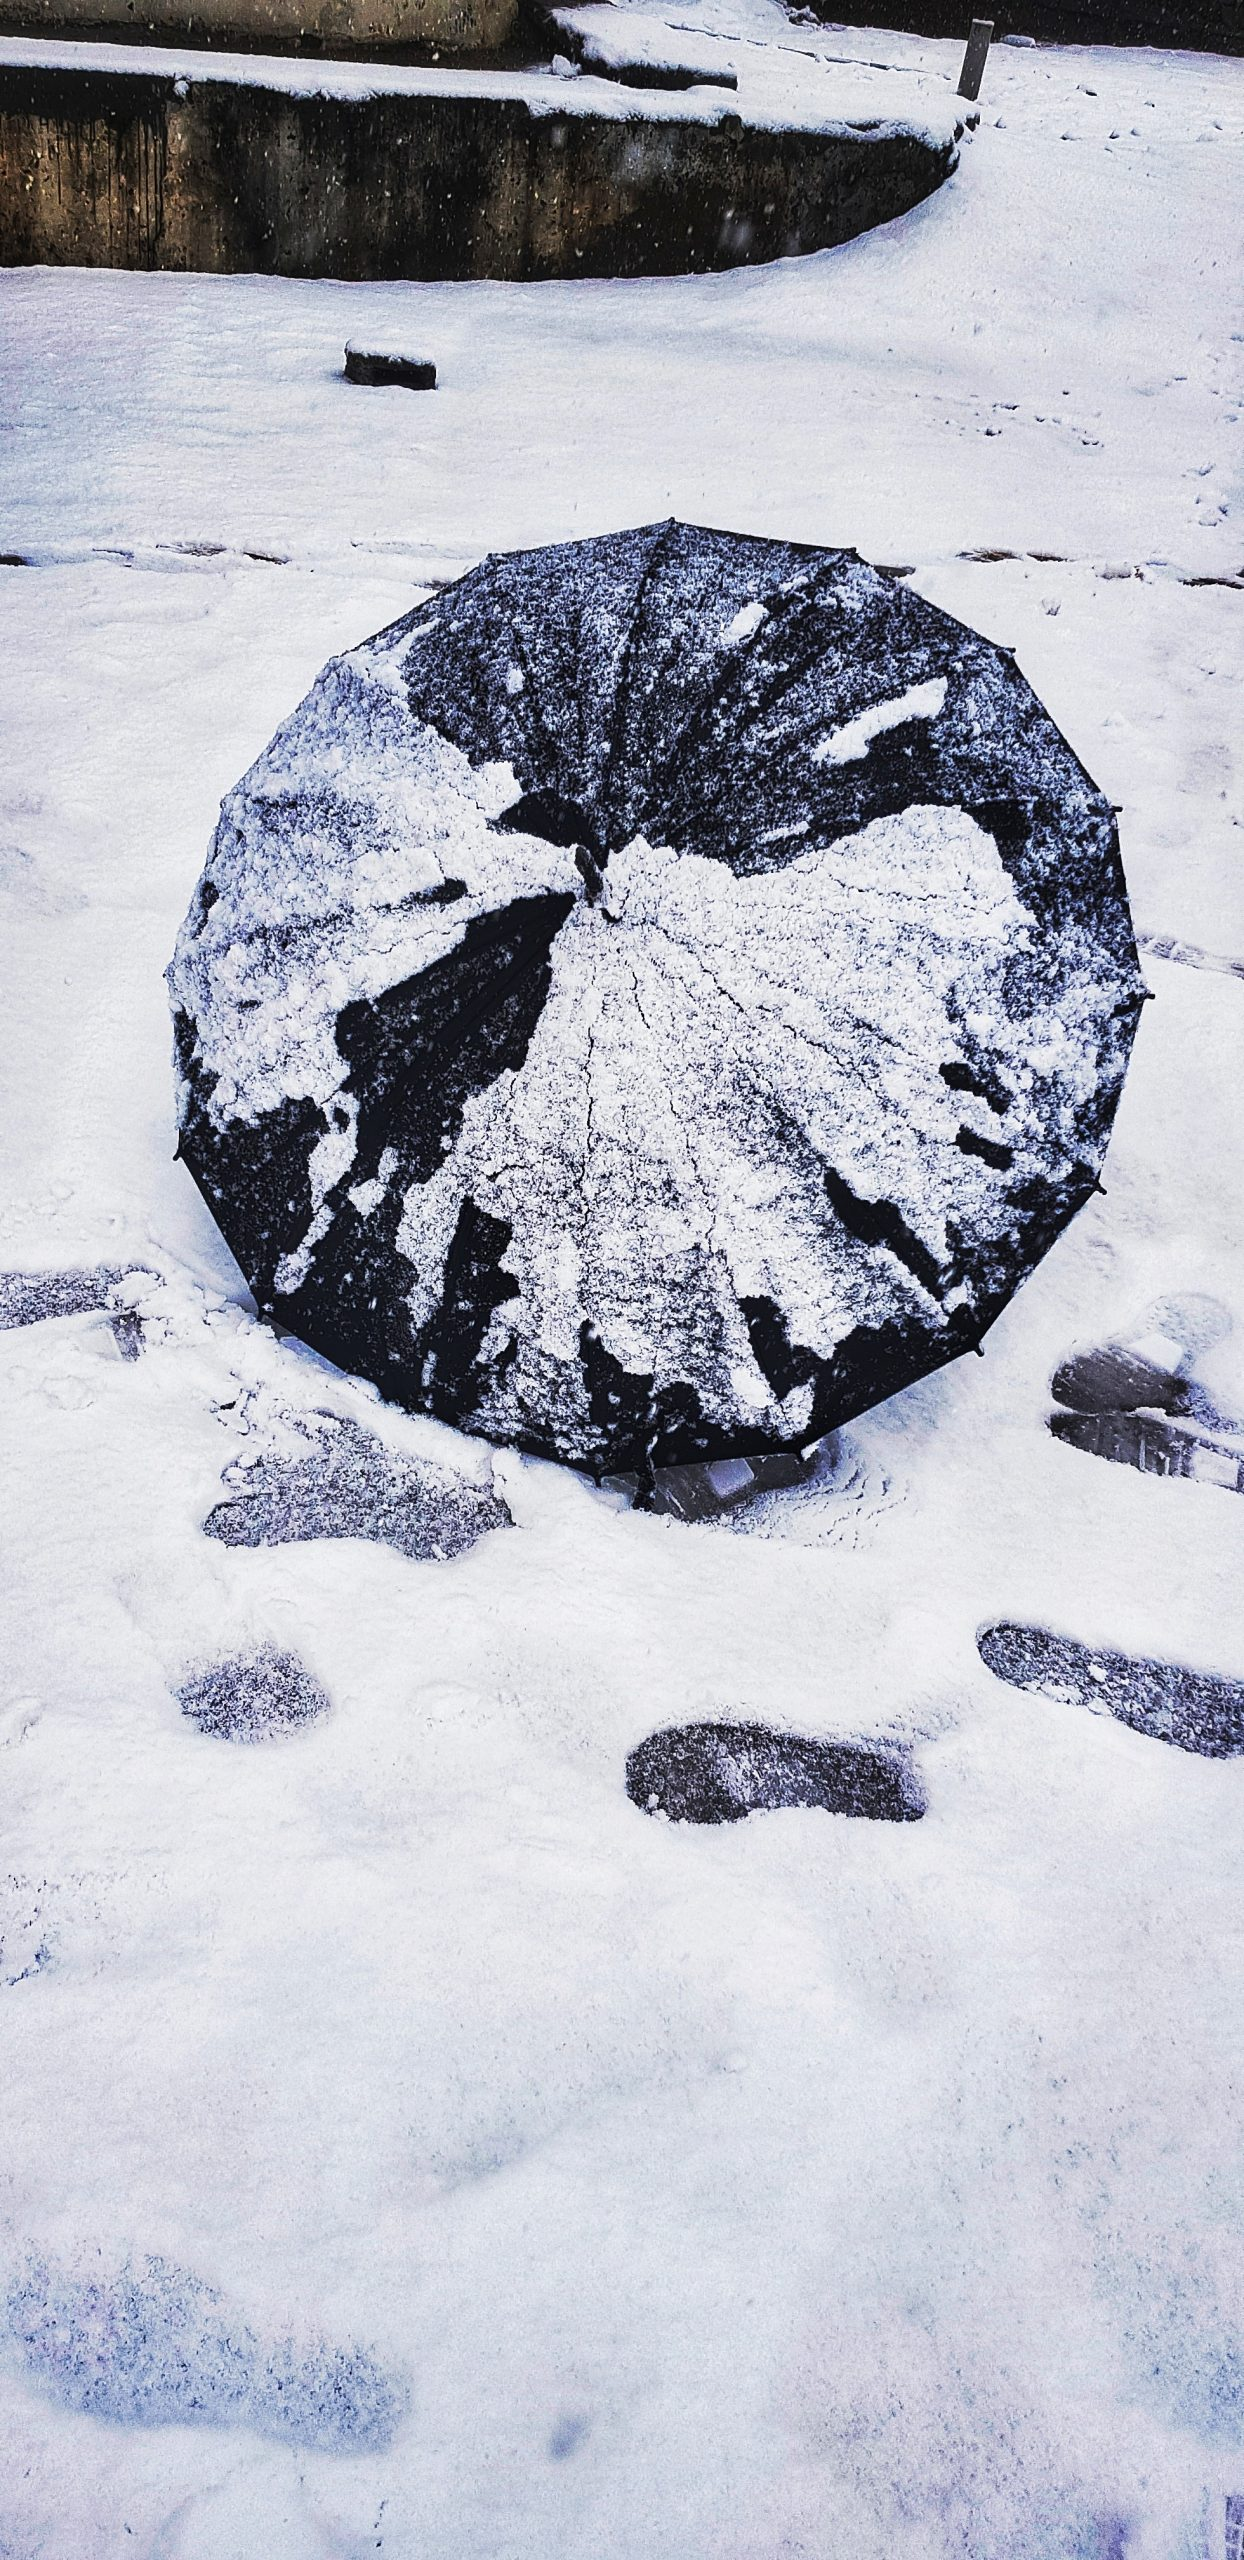 Black umbrella and footsteps in the snow.